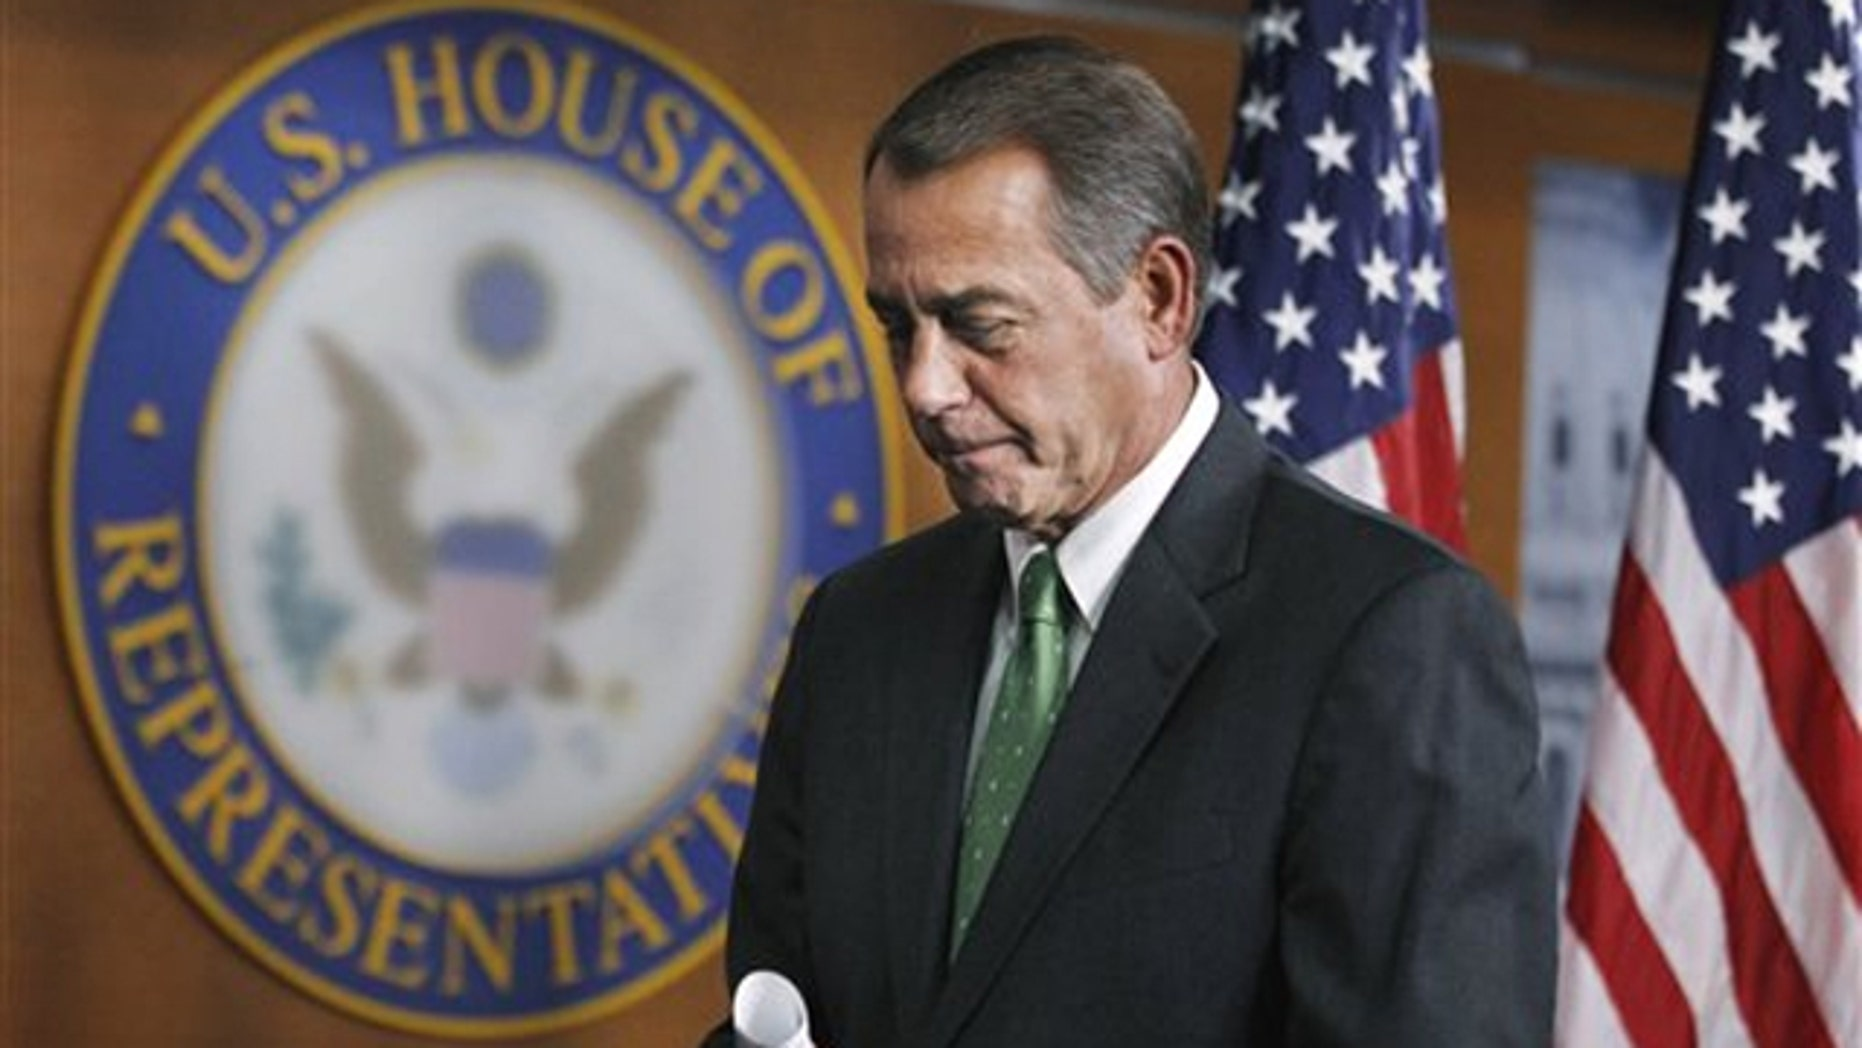 House Speaker John Boehner leaves a news conference on Capitol Hill in Washington Feb. 10.